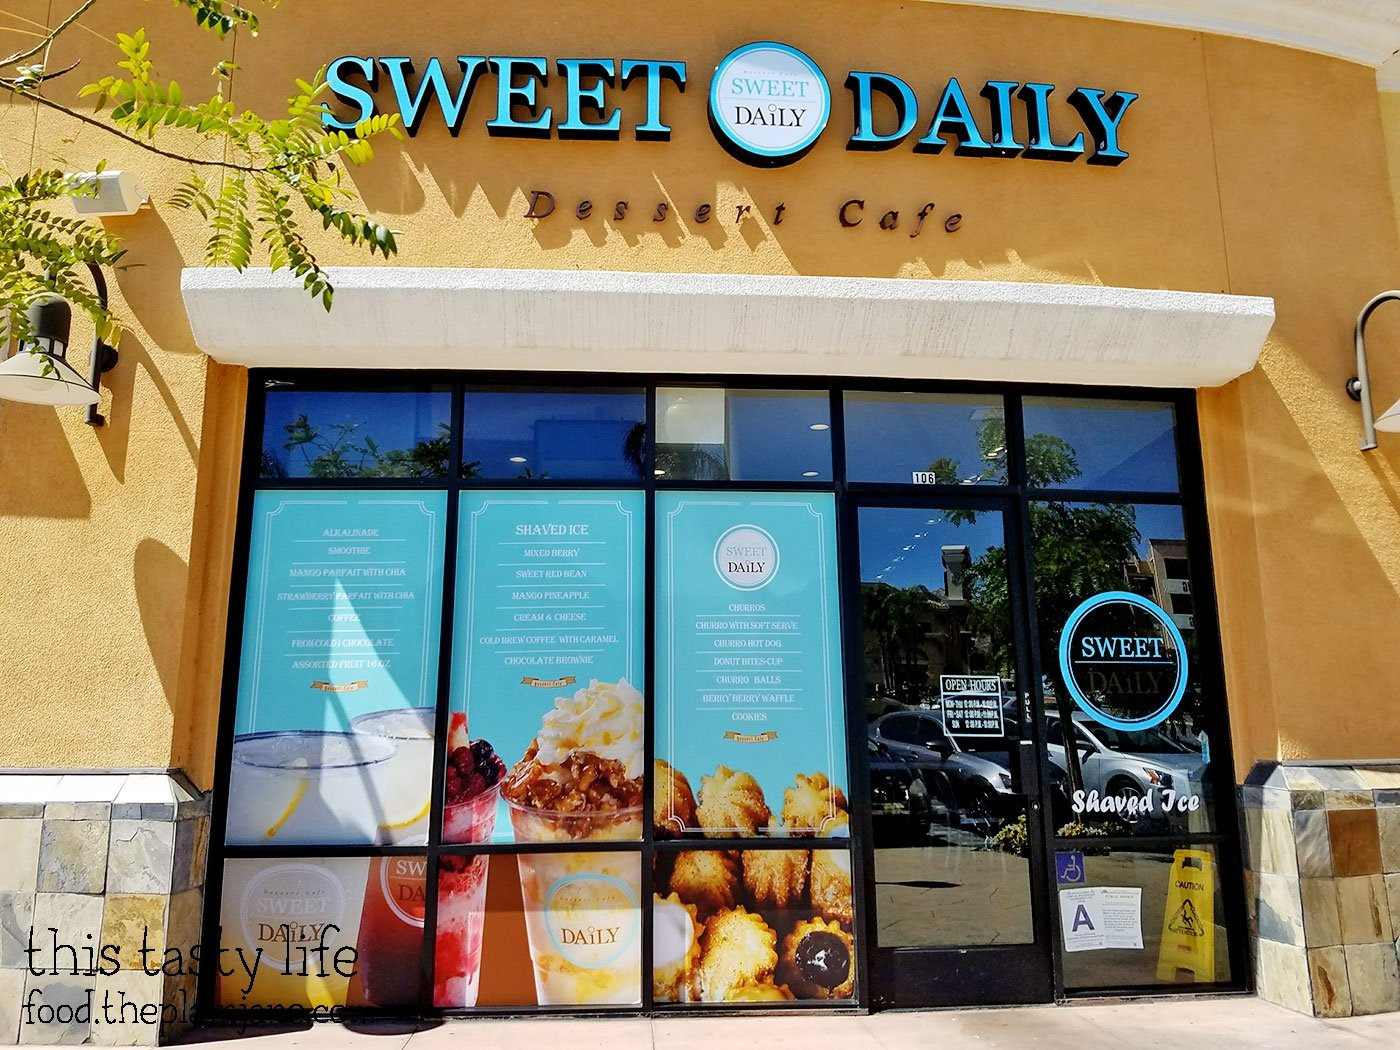 Sweet Daily Cafe / Riverside, CA - This Tasty Life